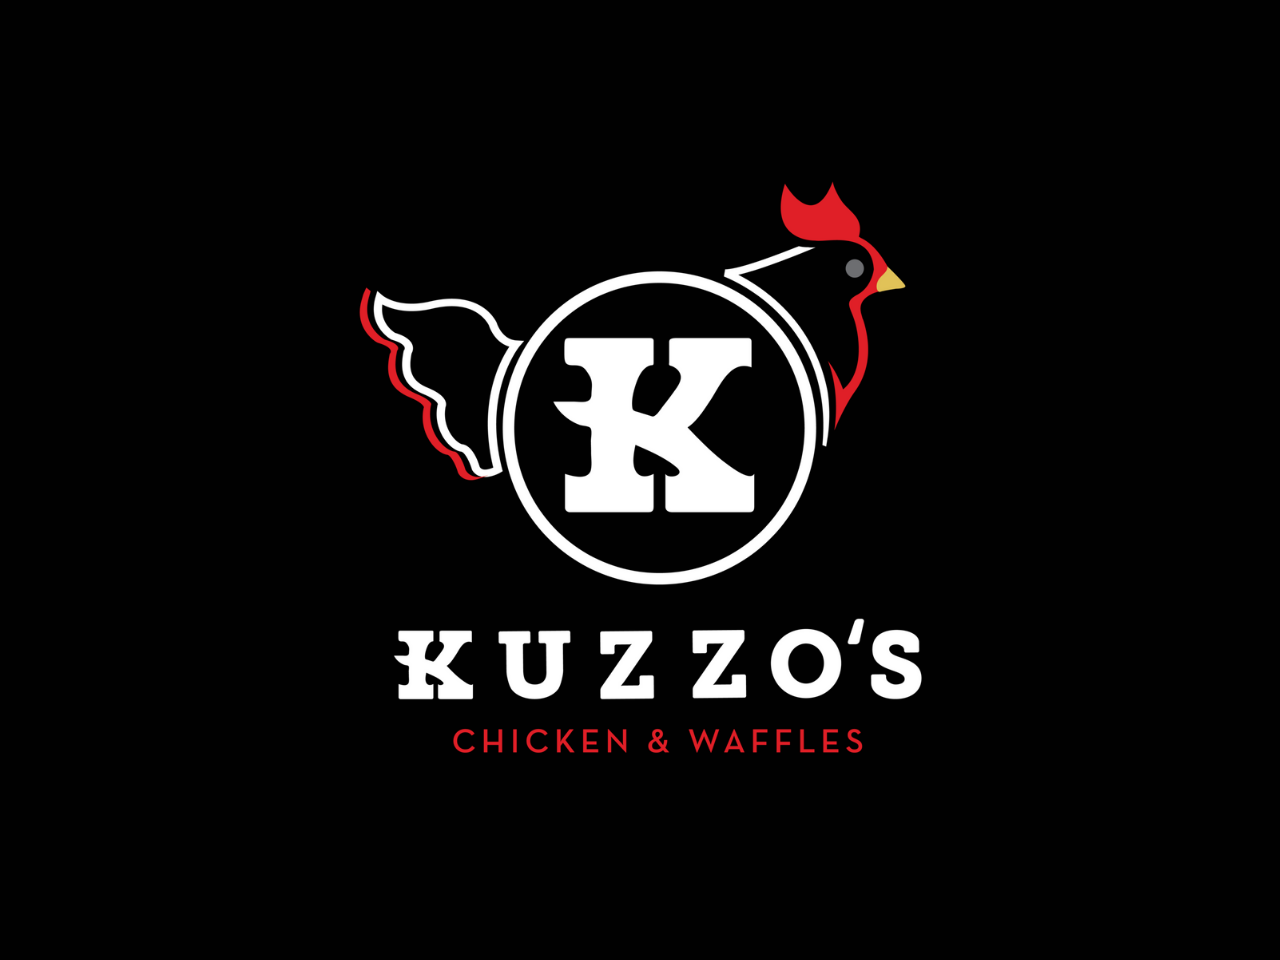 Kuzzos Chicken and Waffles